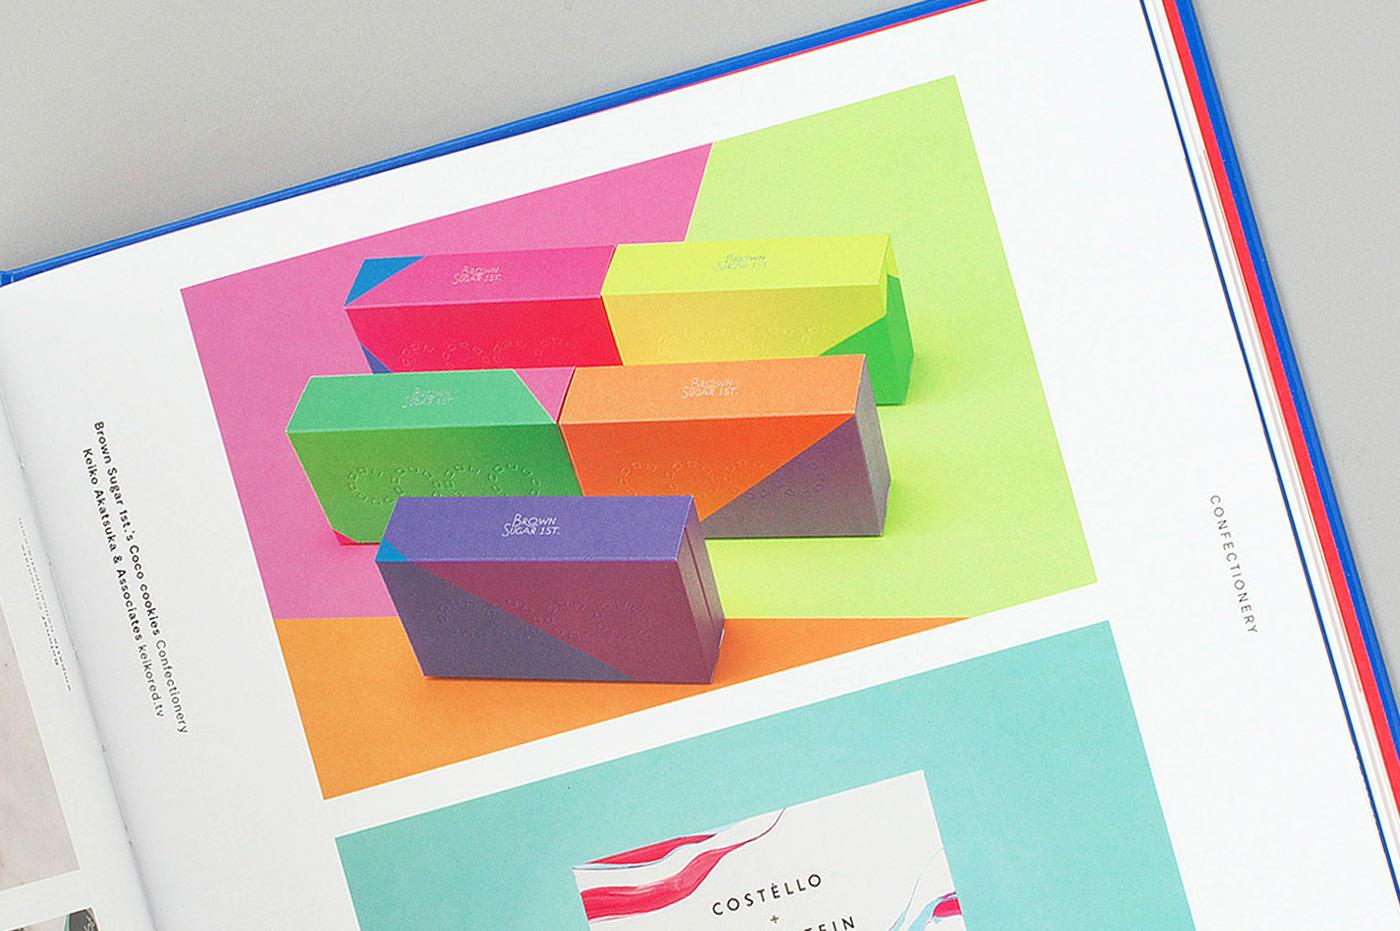 Packaging branding  ArtDirection graphicdesign design structure